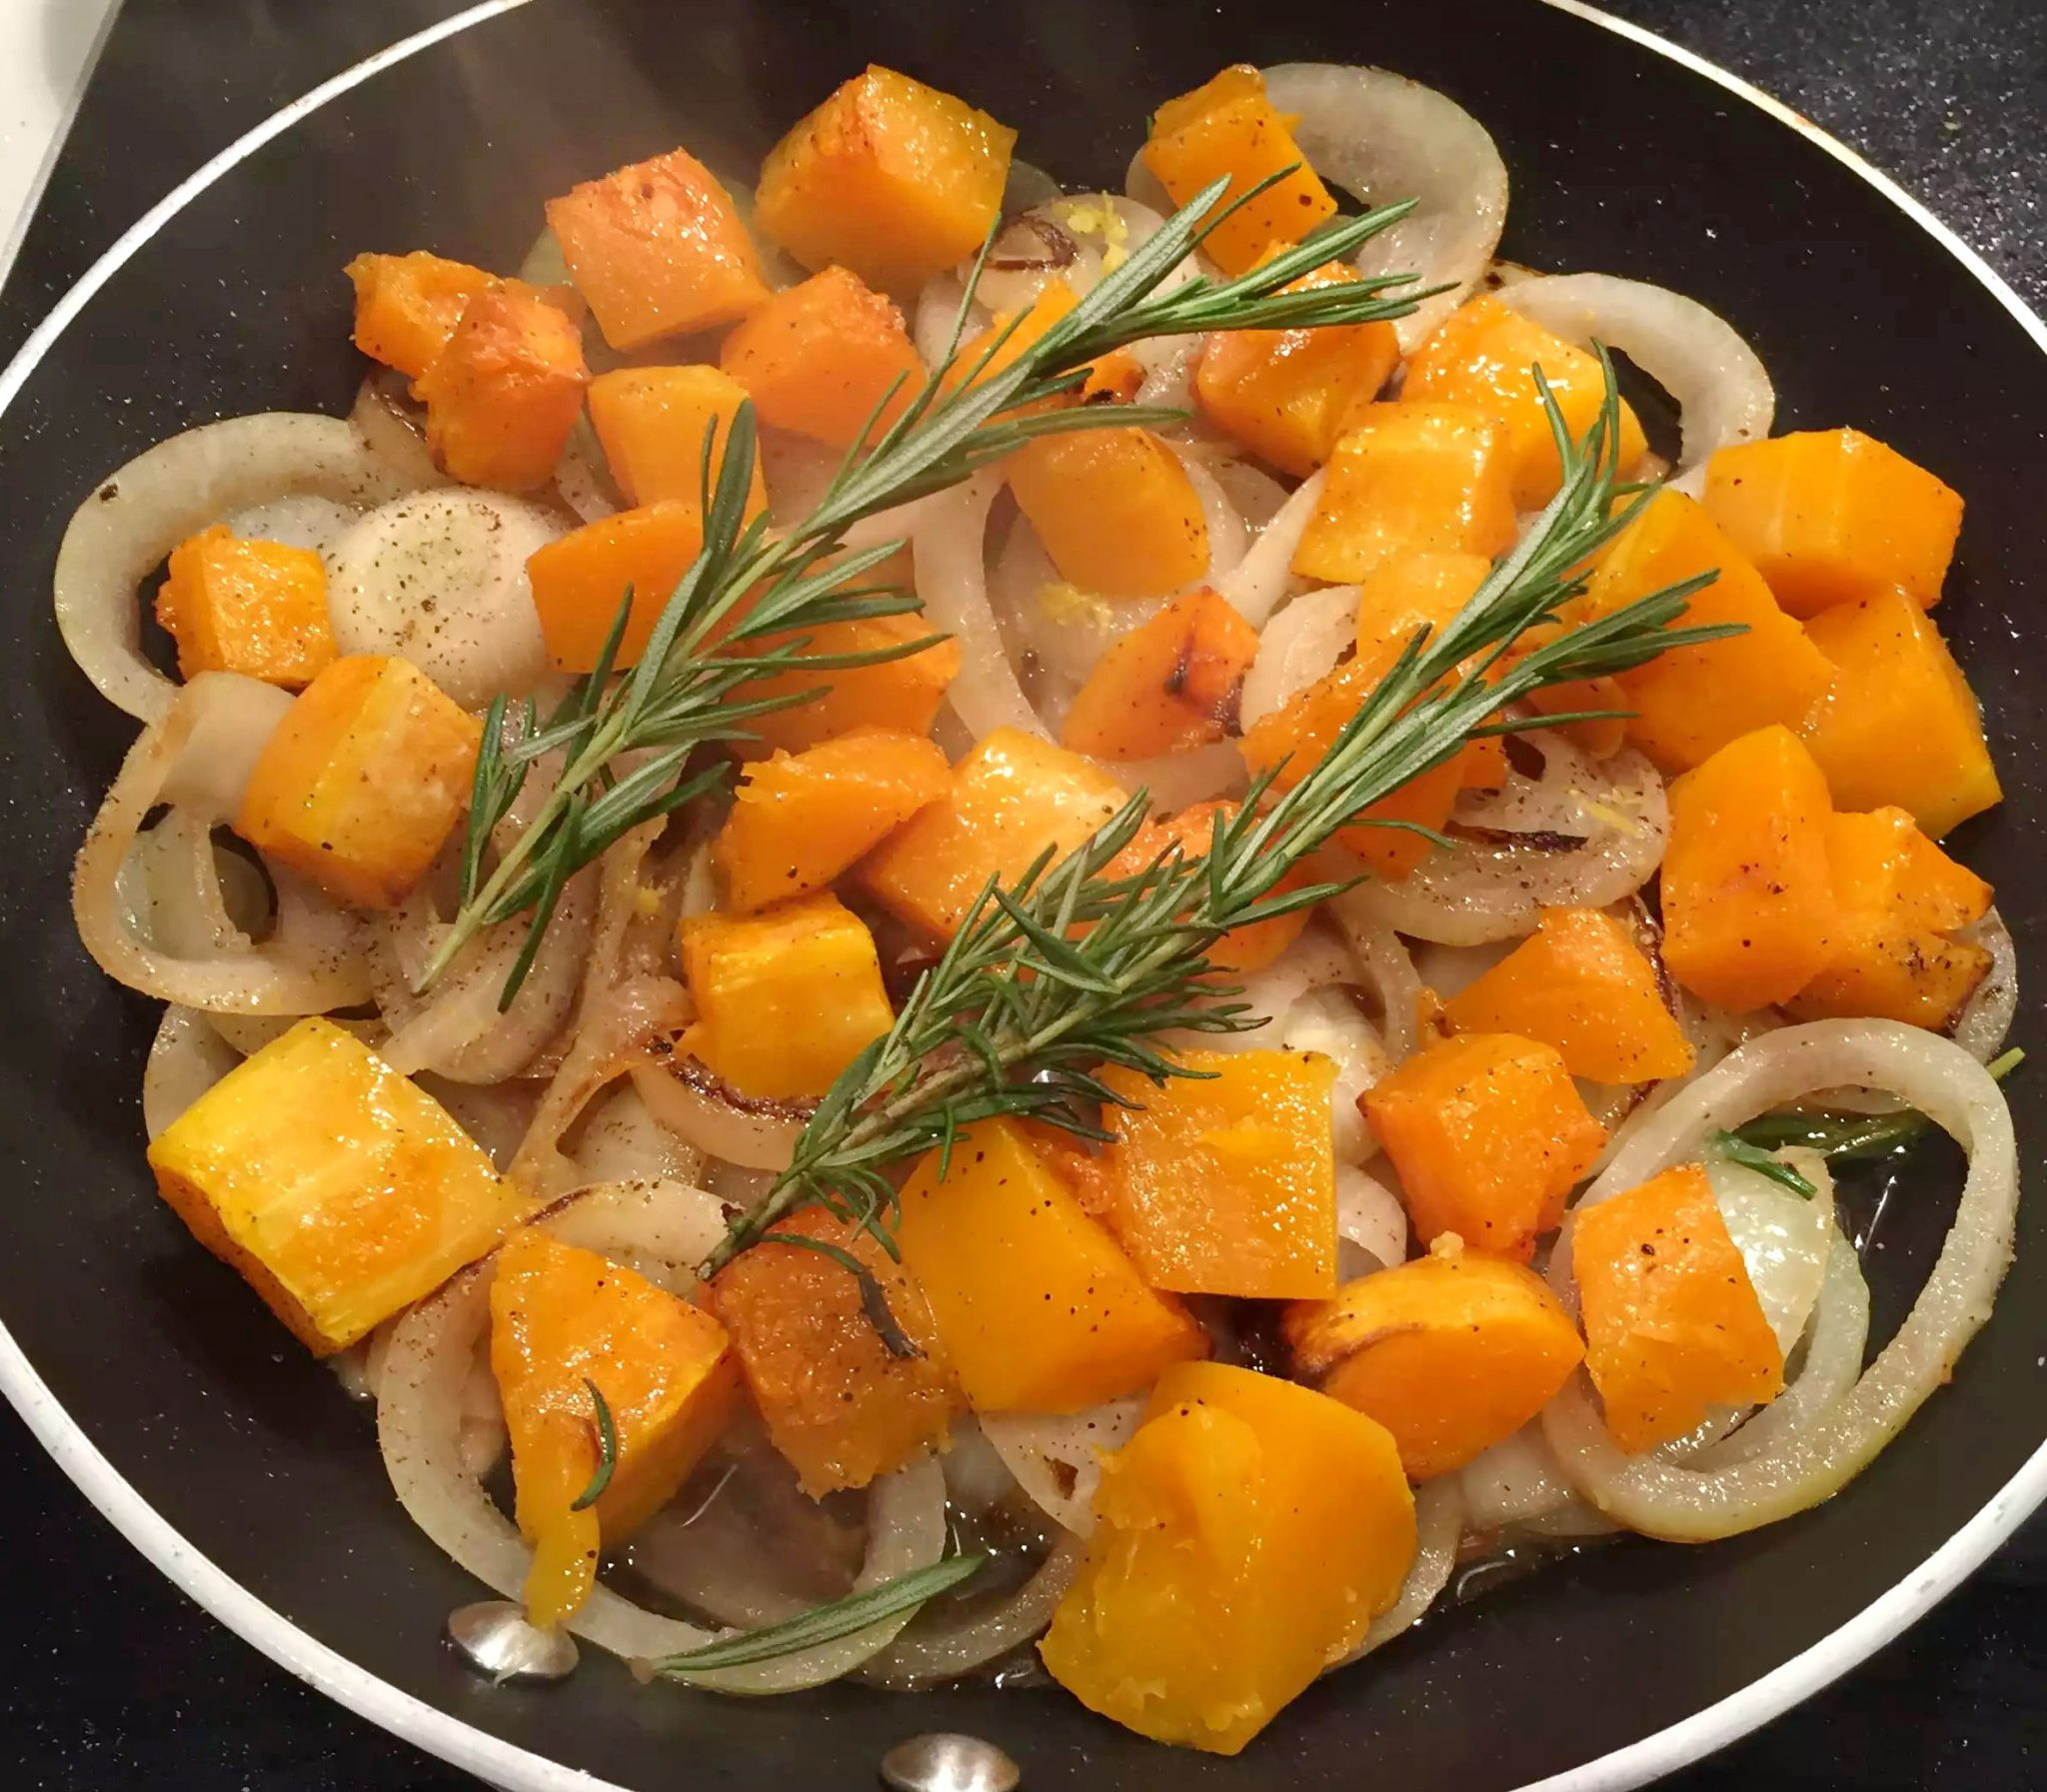 Roasted Chicken with a Lemon, Rosemary & White Wine Sauce by Emma Eats & Explores - SCD, Paleo, Grainfree, Glutenfree, Dairyfree, Sugarfree, Clean Eating